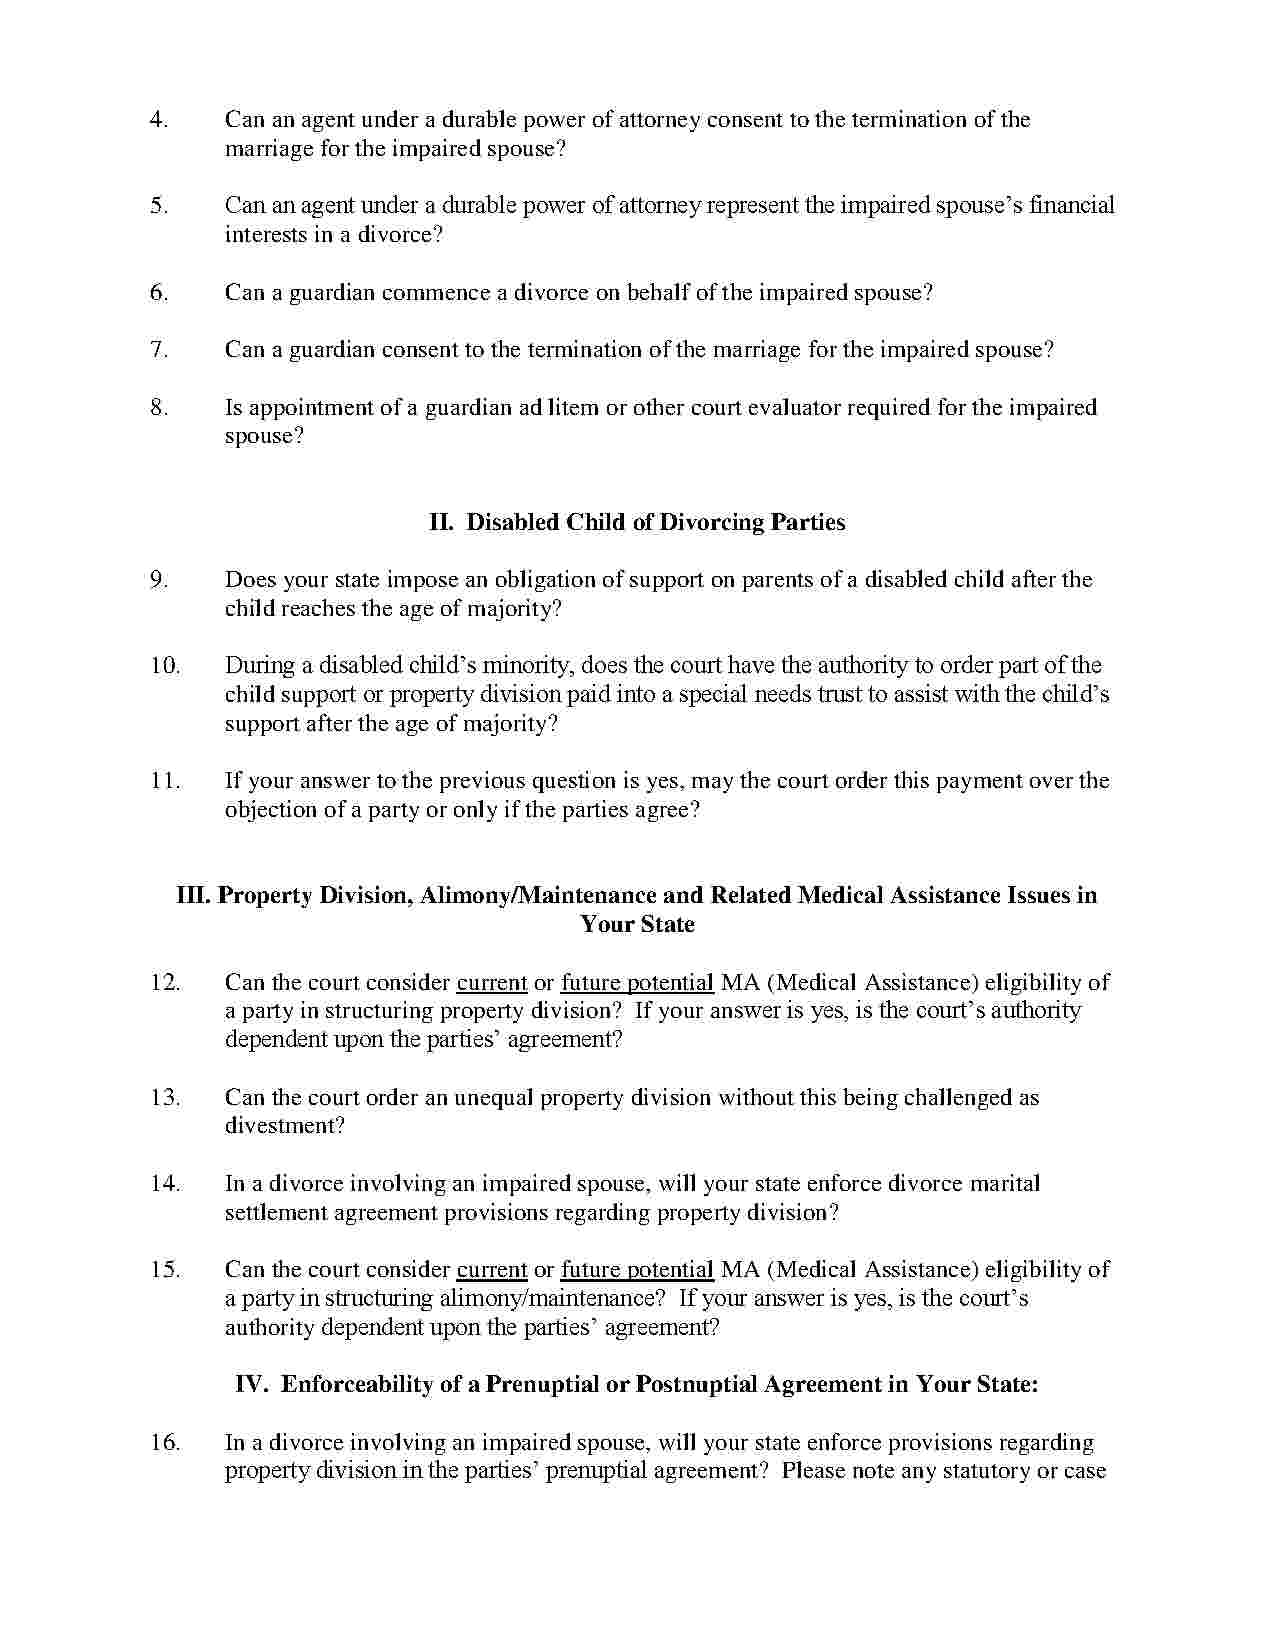 Marriage Termination Agreement Download Postnuptial Agreement Style 58 Template For Free At